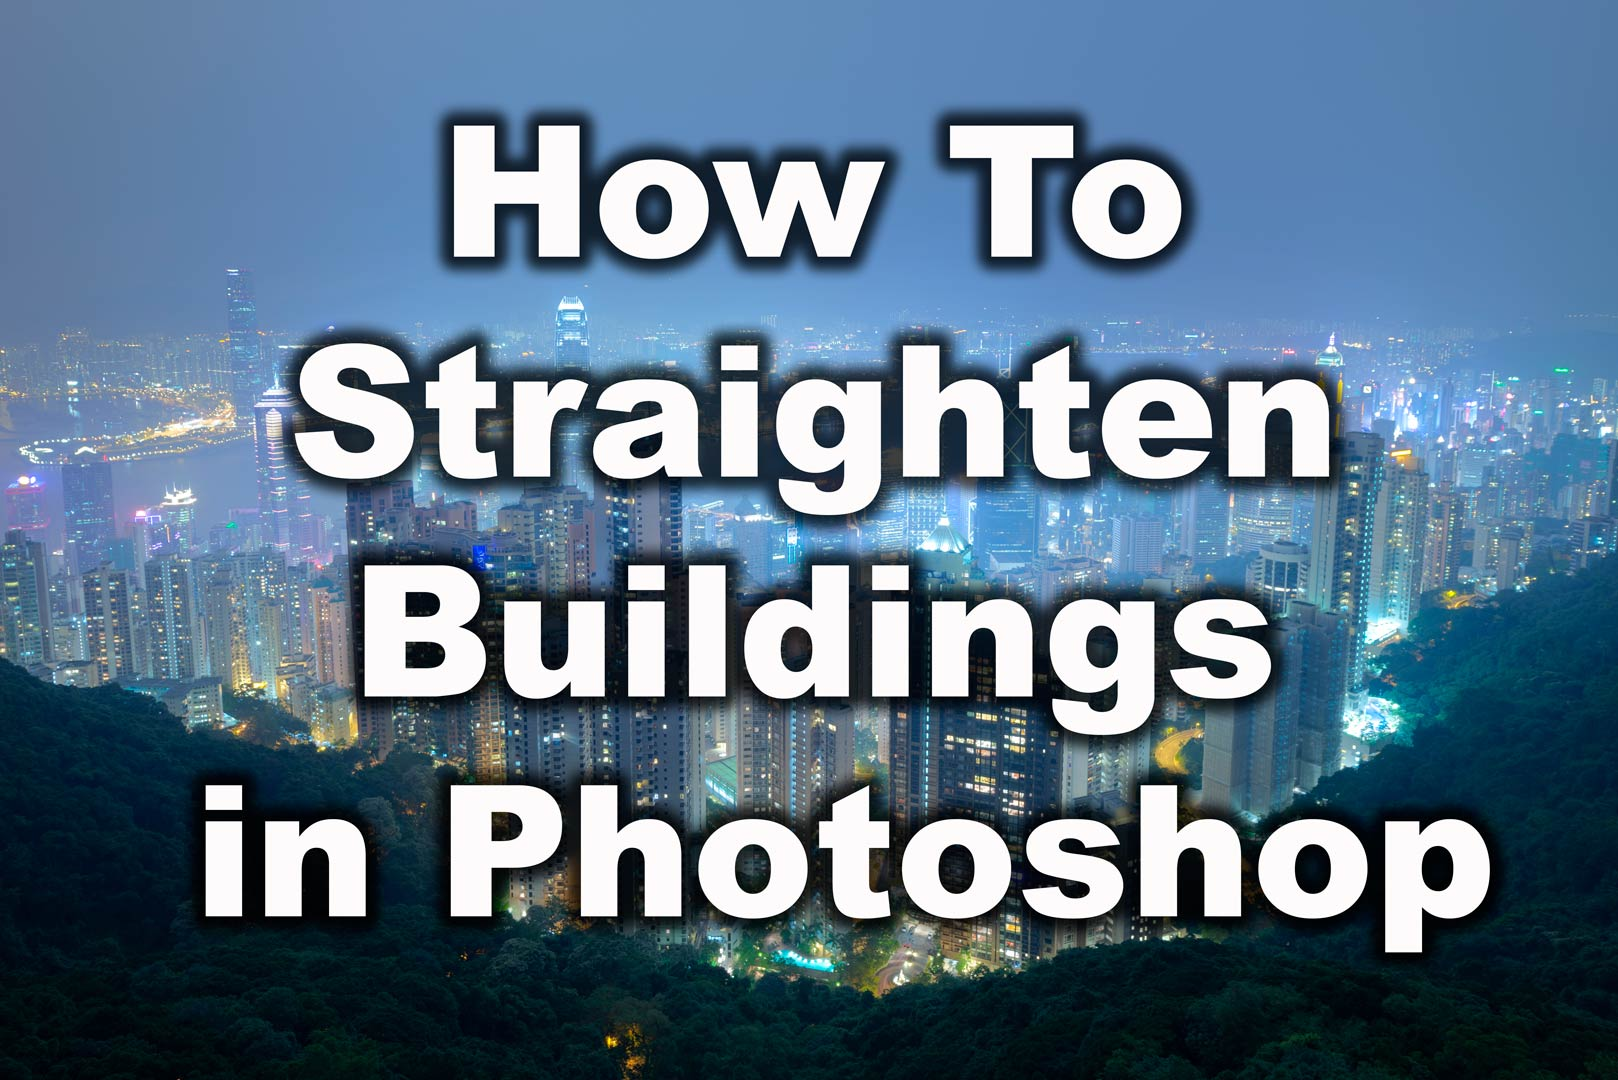 How to Straighten Buildings in Photoshop